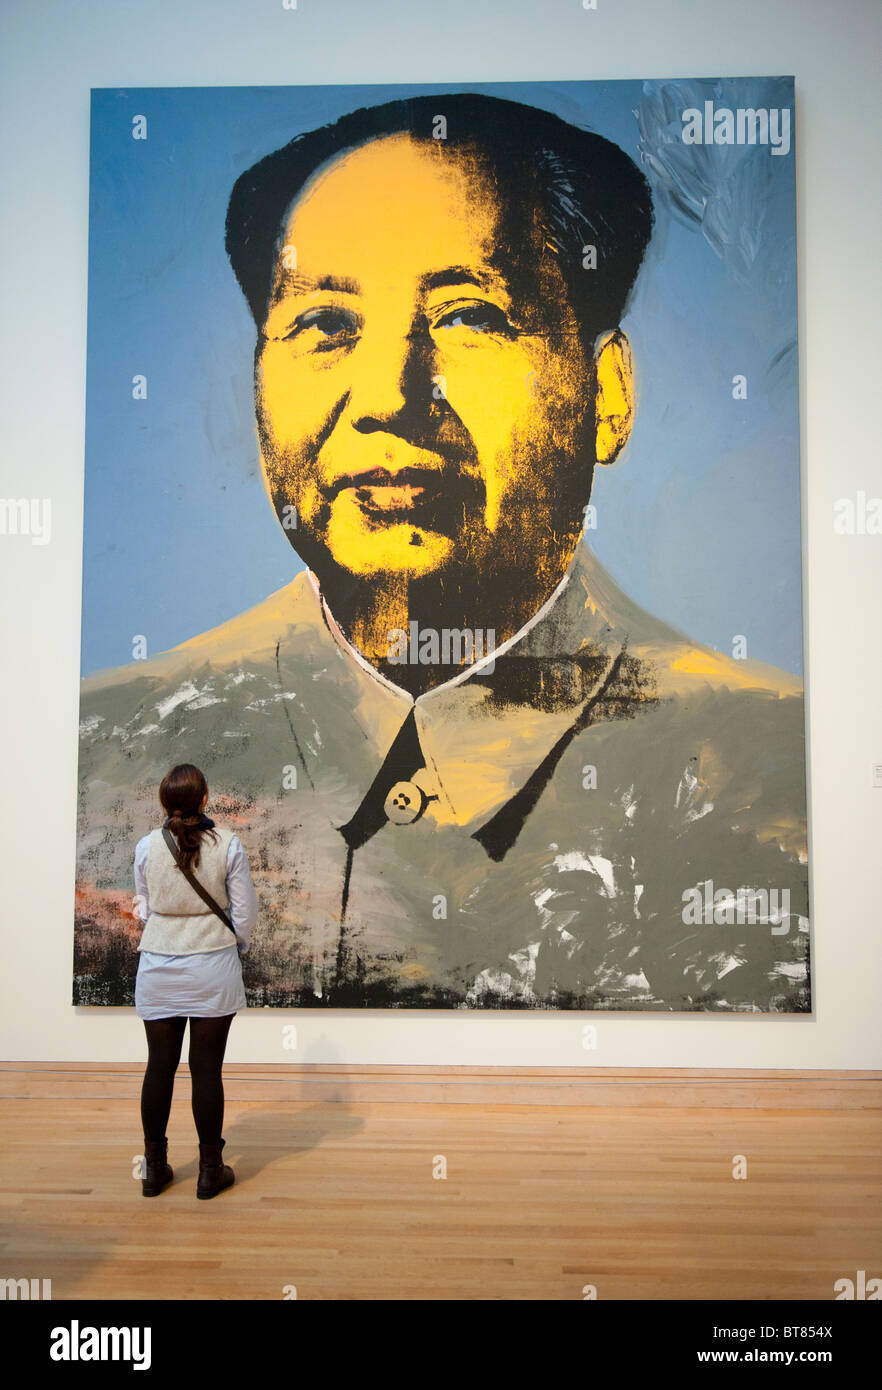 New york usa 11th nov 2015 telephone bidders stand in front of the - Portrait Of Chairman Mao By Andy Warhol At Metropolitan Museum Of Art In Manhattan New